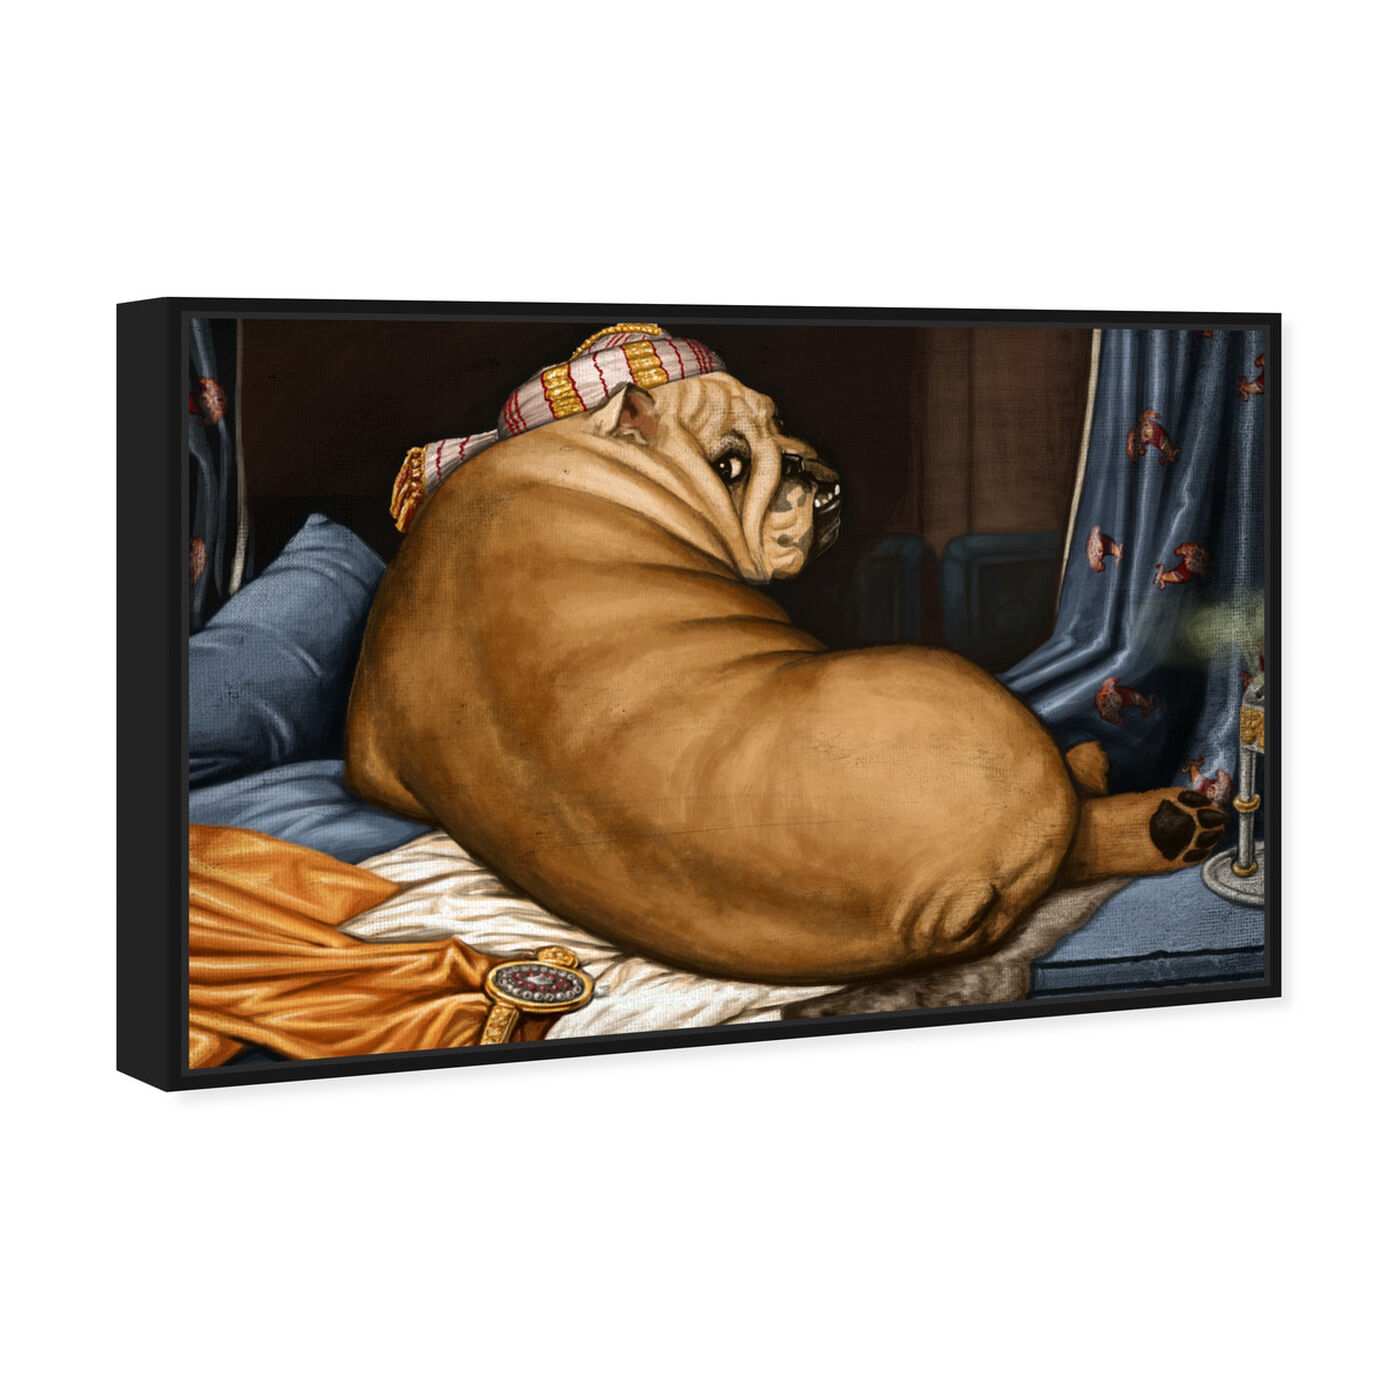 Angled view of Grande Bulldog-alisque By Carson Kressley featuring classic and figurative and classic art.